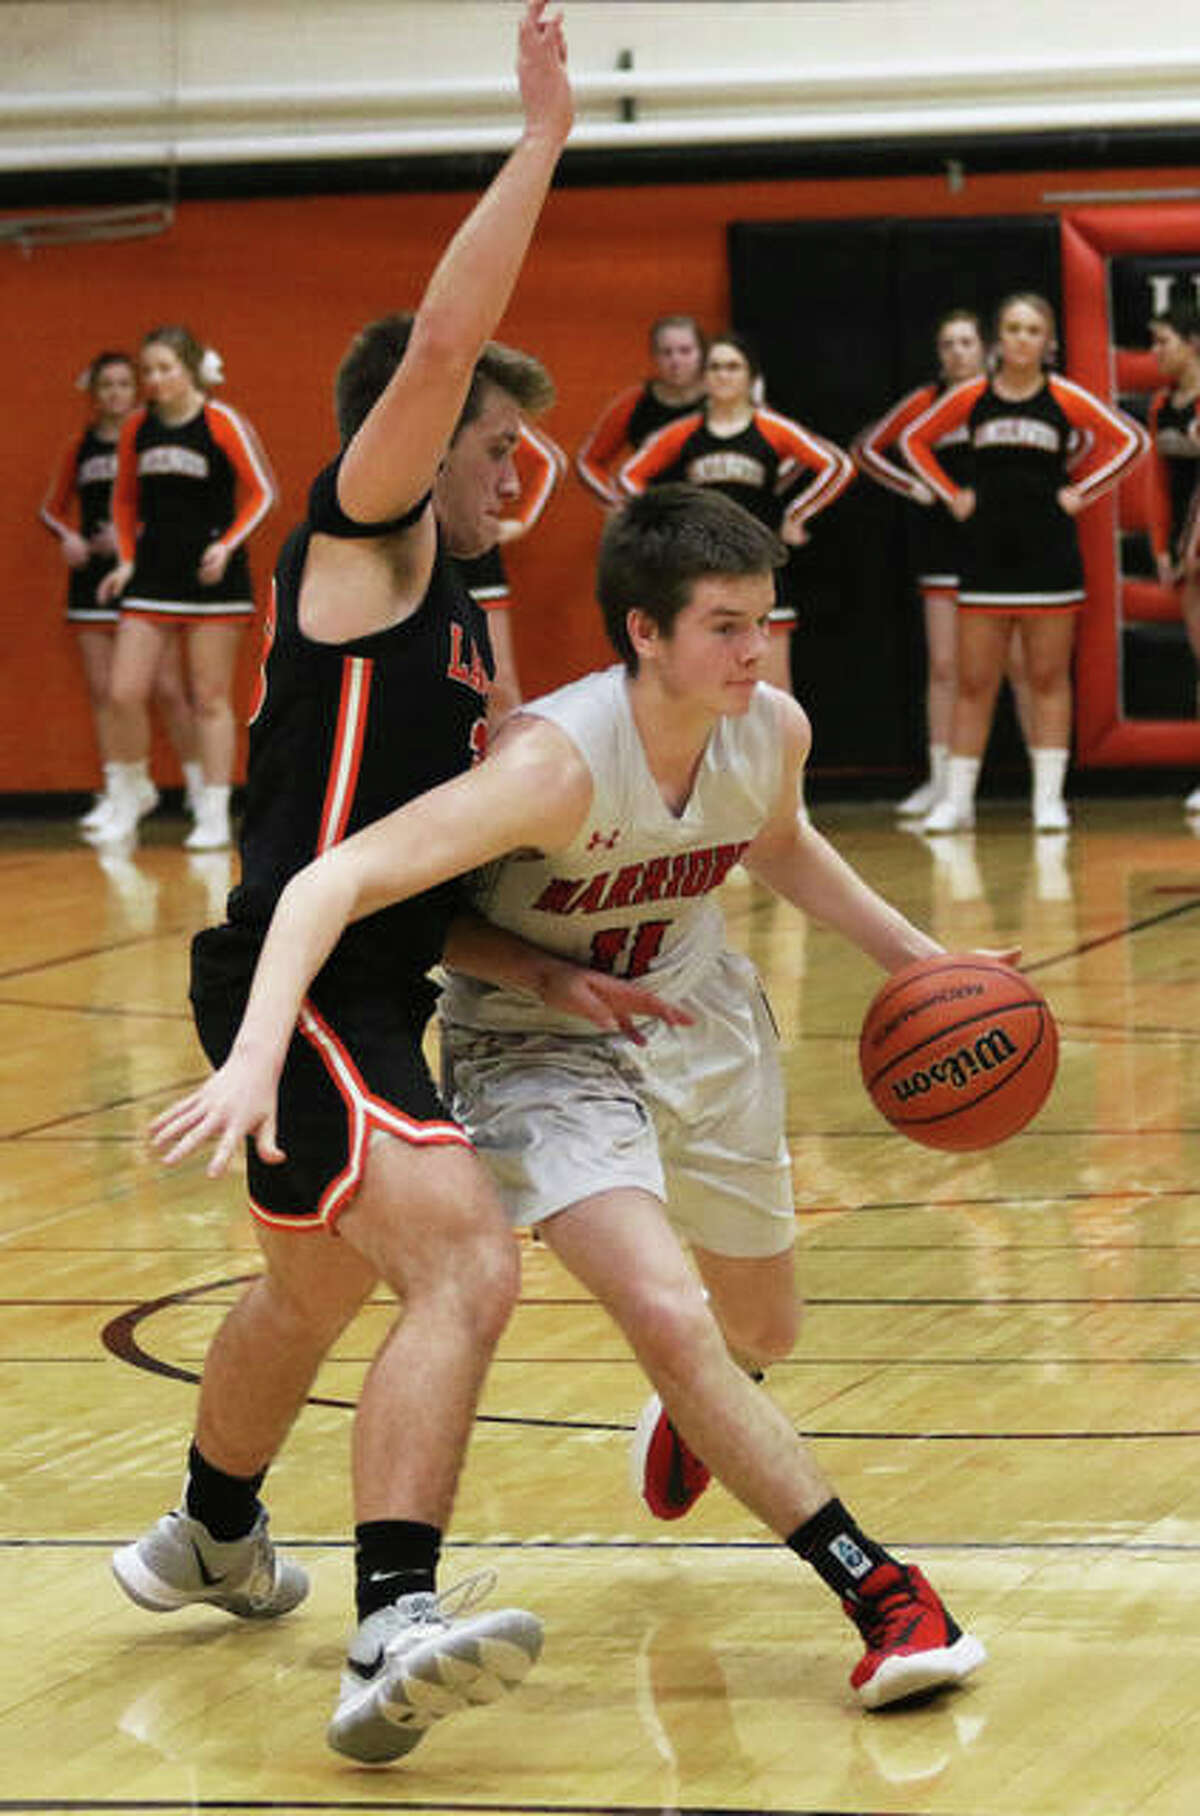 Calhoun's Stone Zirkelbach (right) dribbles past a Raymond Lincolnwood defender in Friday's championship game at the Lincolnwood Class 1A Regional in Raymond.